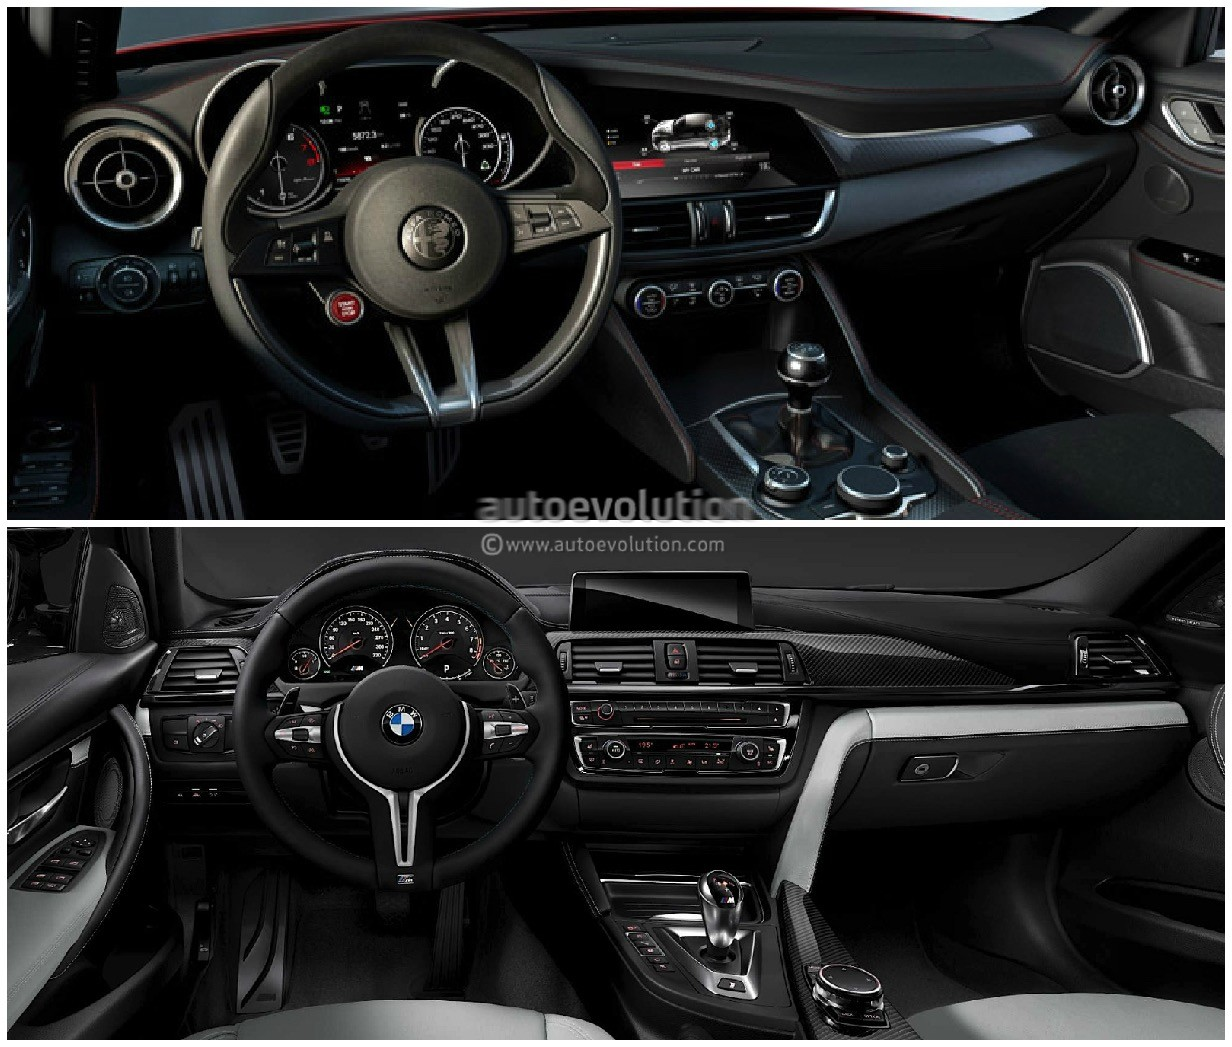 Photo Comparison Bmw F80 M3 Vs Alfa Romeo Giulia Qv